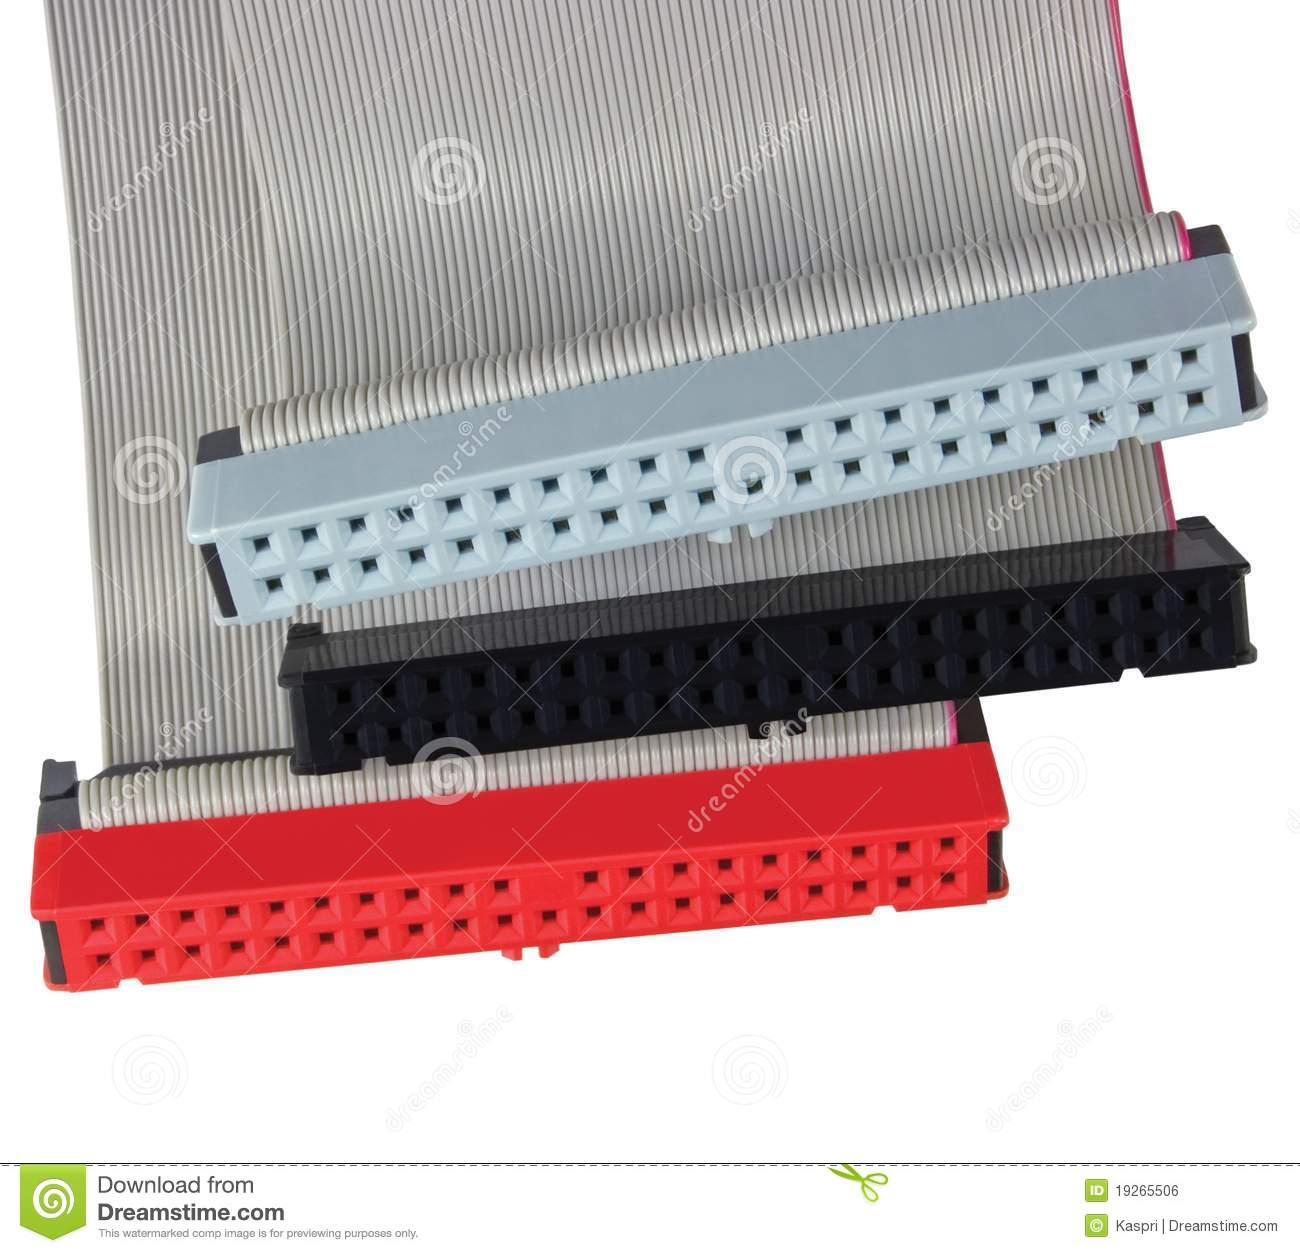 Ribbon Cable Texture : Connectors ribbon cables for computer hard drive royalty